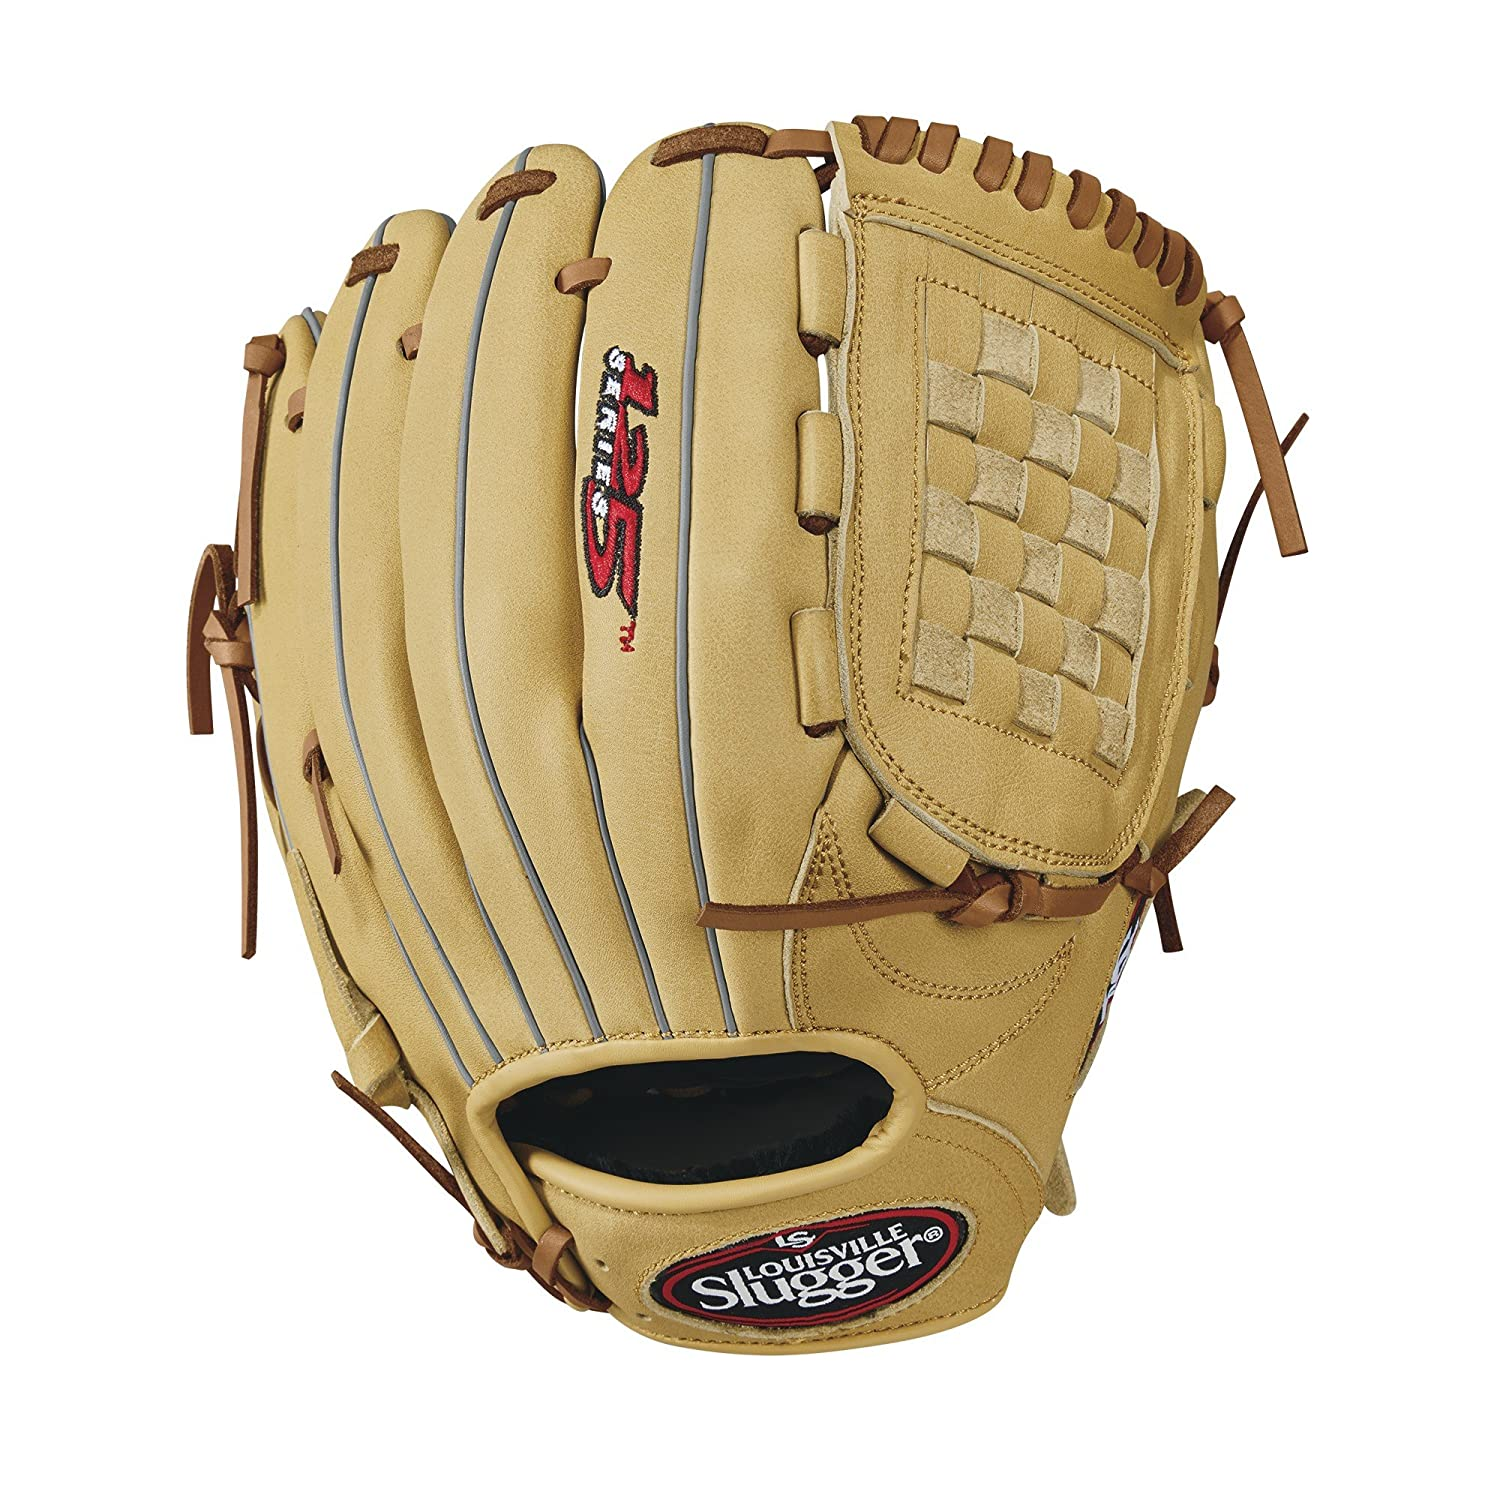 Mens outfield gloves - Amazon Com Louisville Slugger 125 Series Baseball Gloves Sports Outdoors